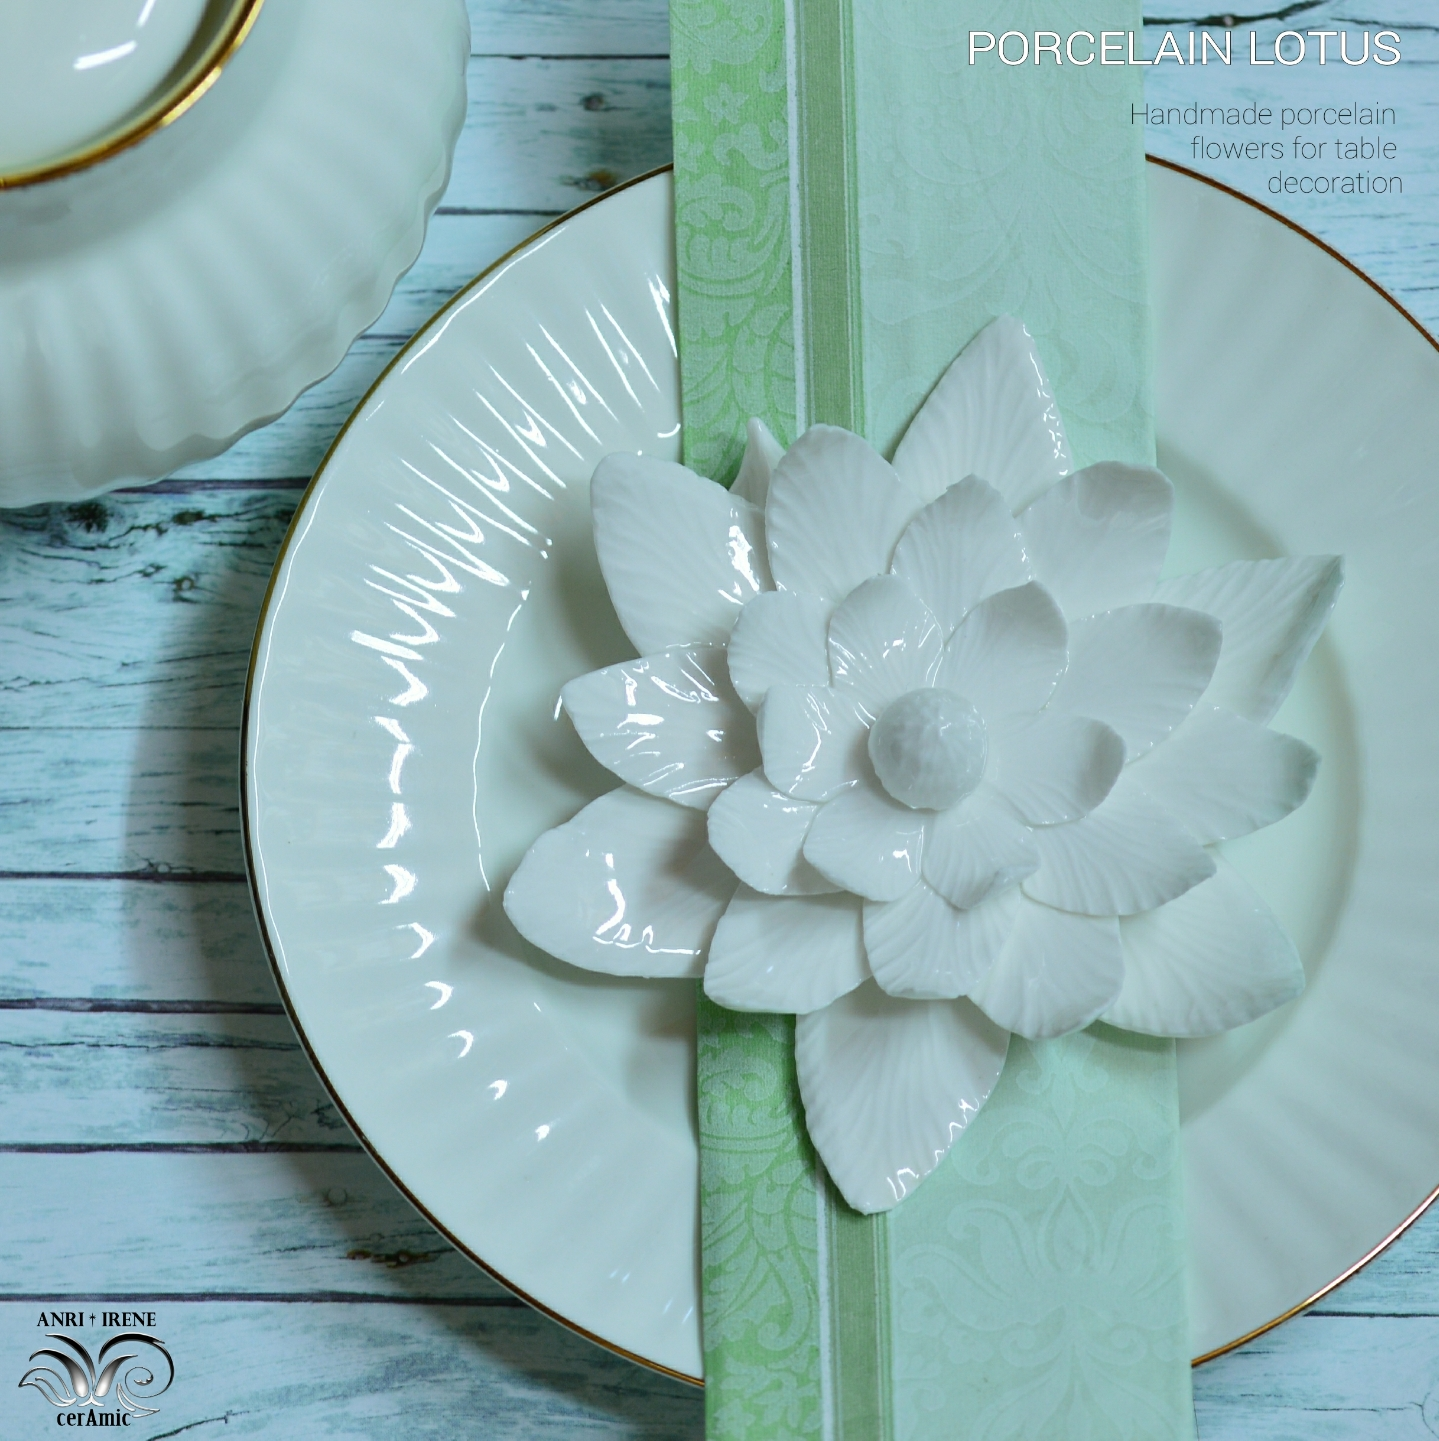 Porcelain white lotus